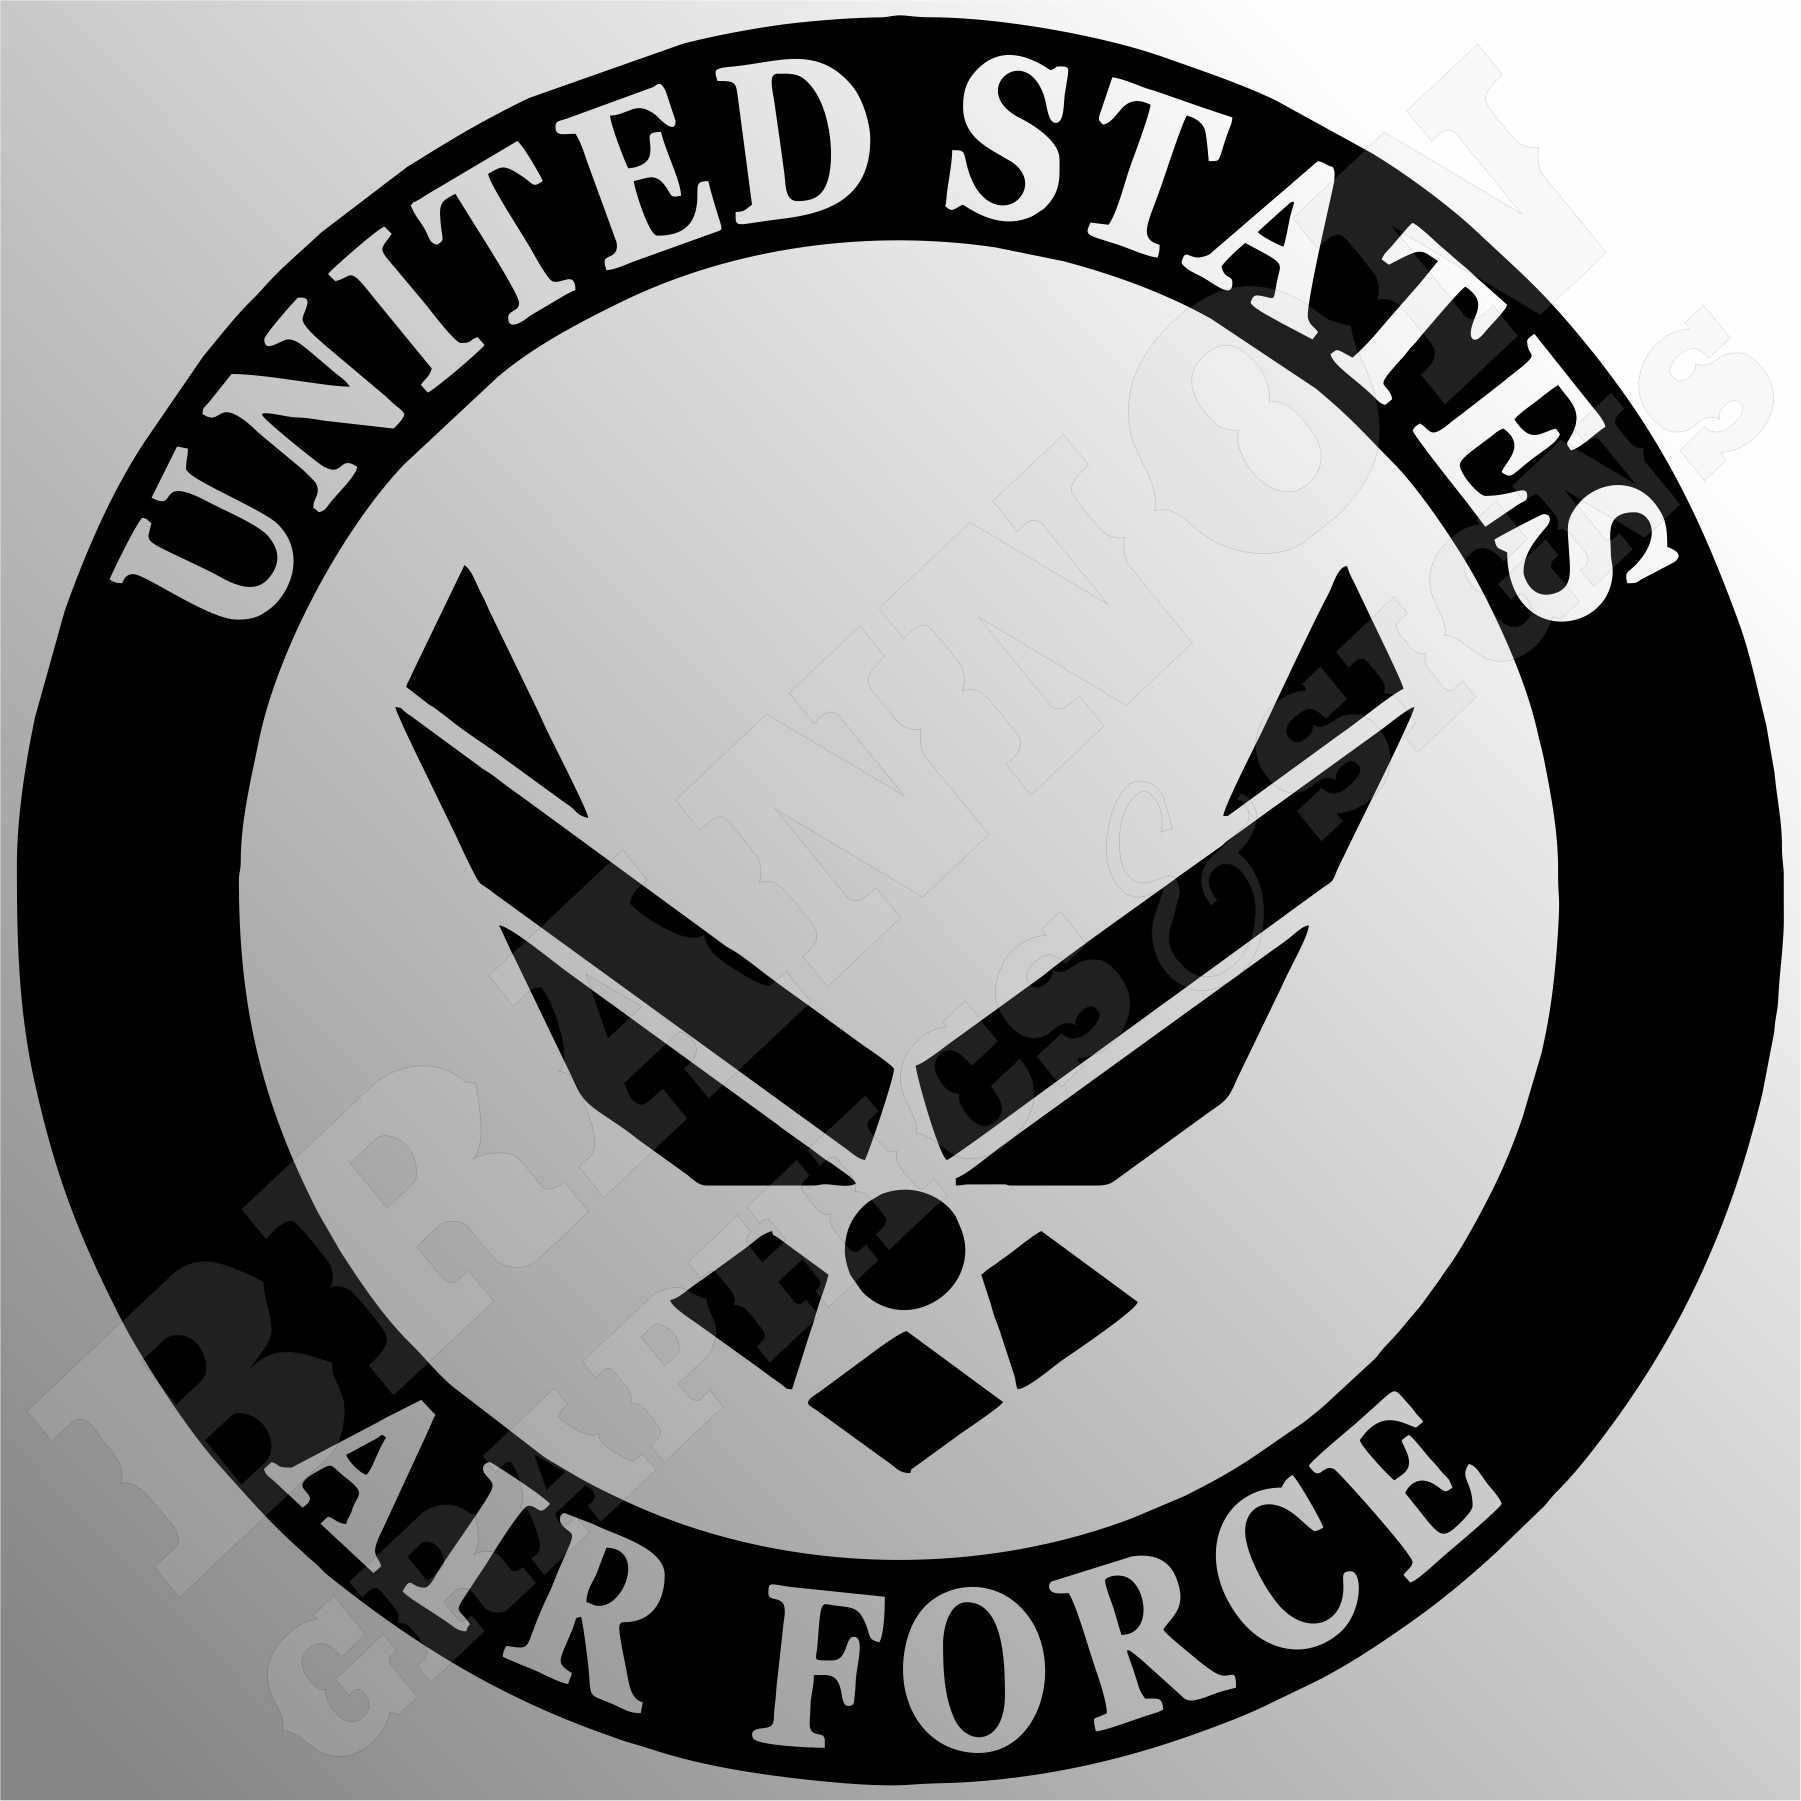 quotUS Air Force Logoquot Military themed design that can beU.s. Air Force Logo Black And White